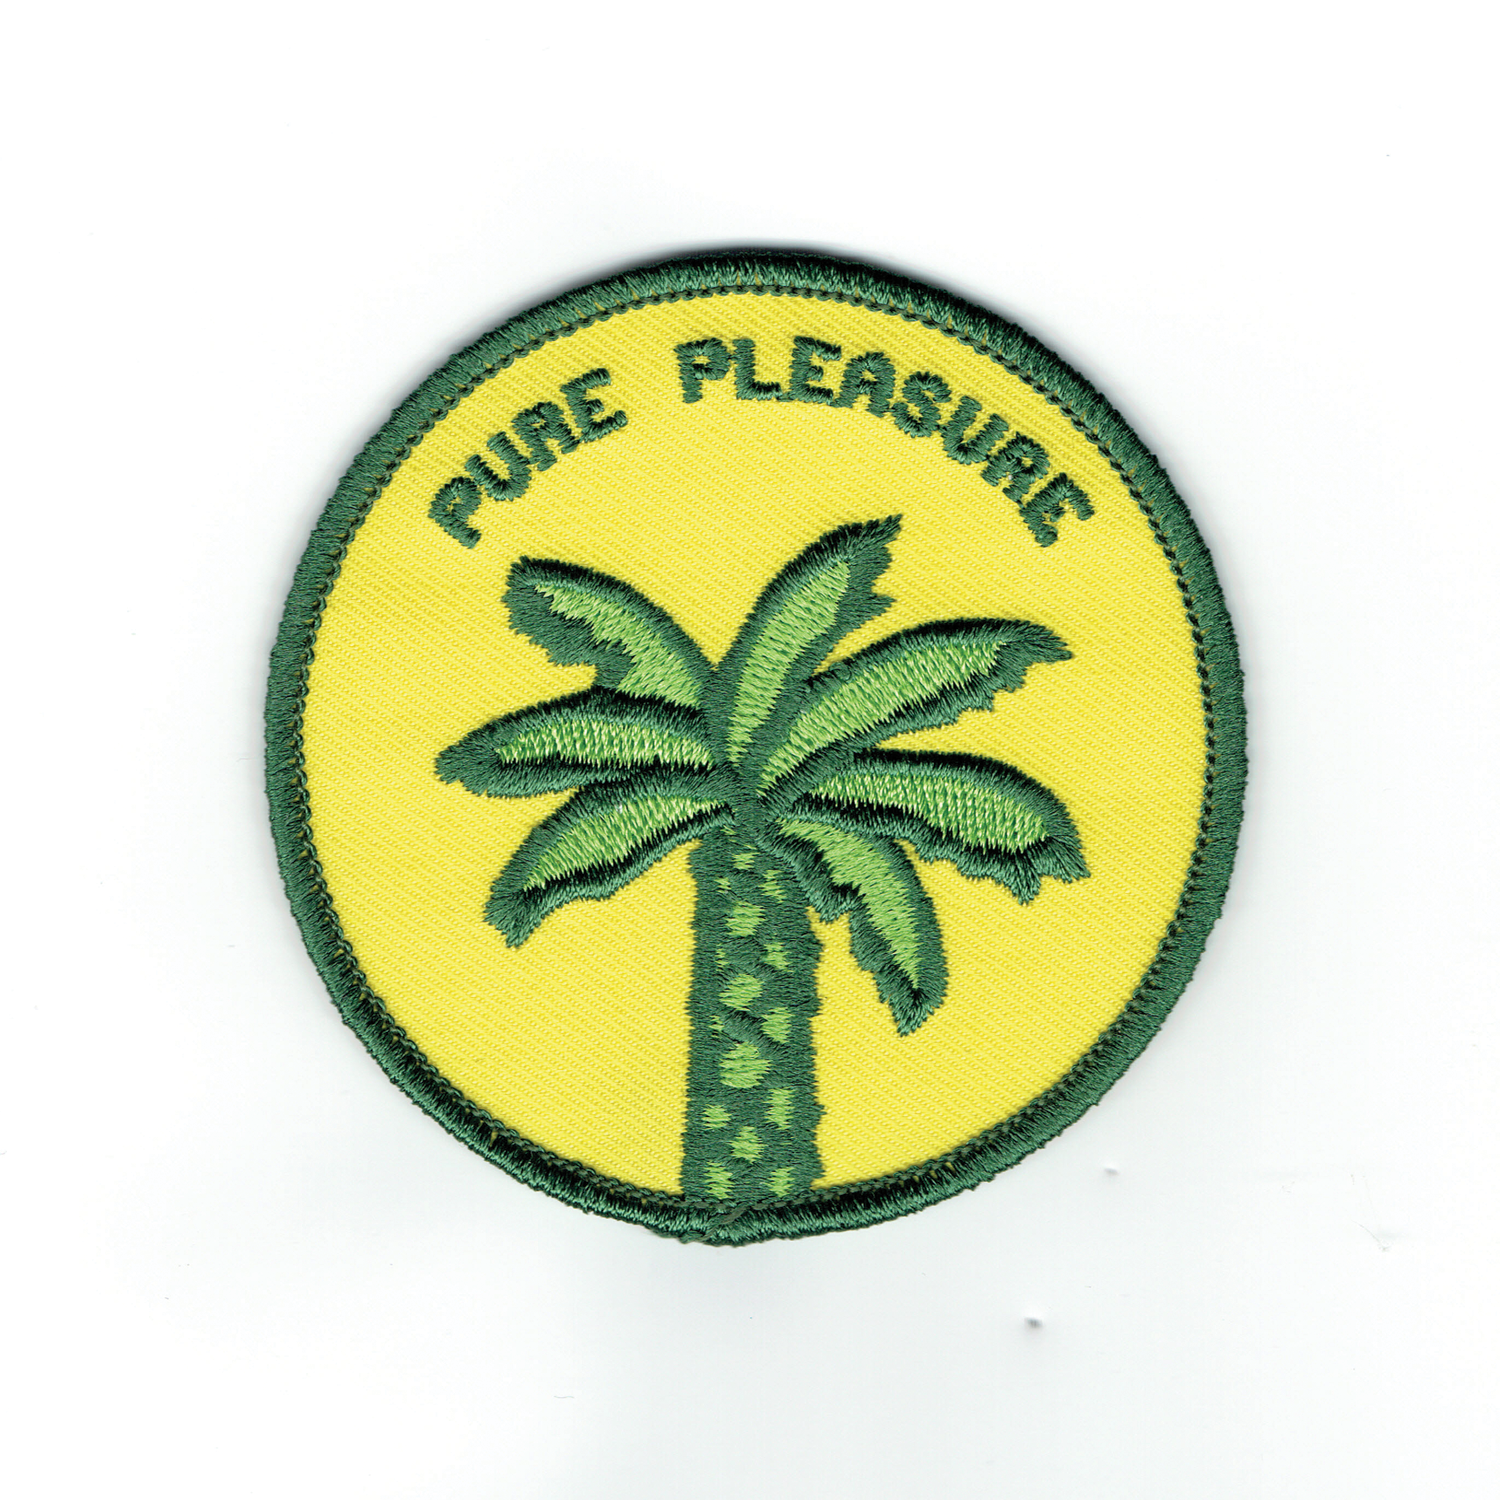 PURE PLEASURE PATCH